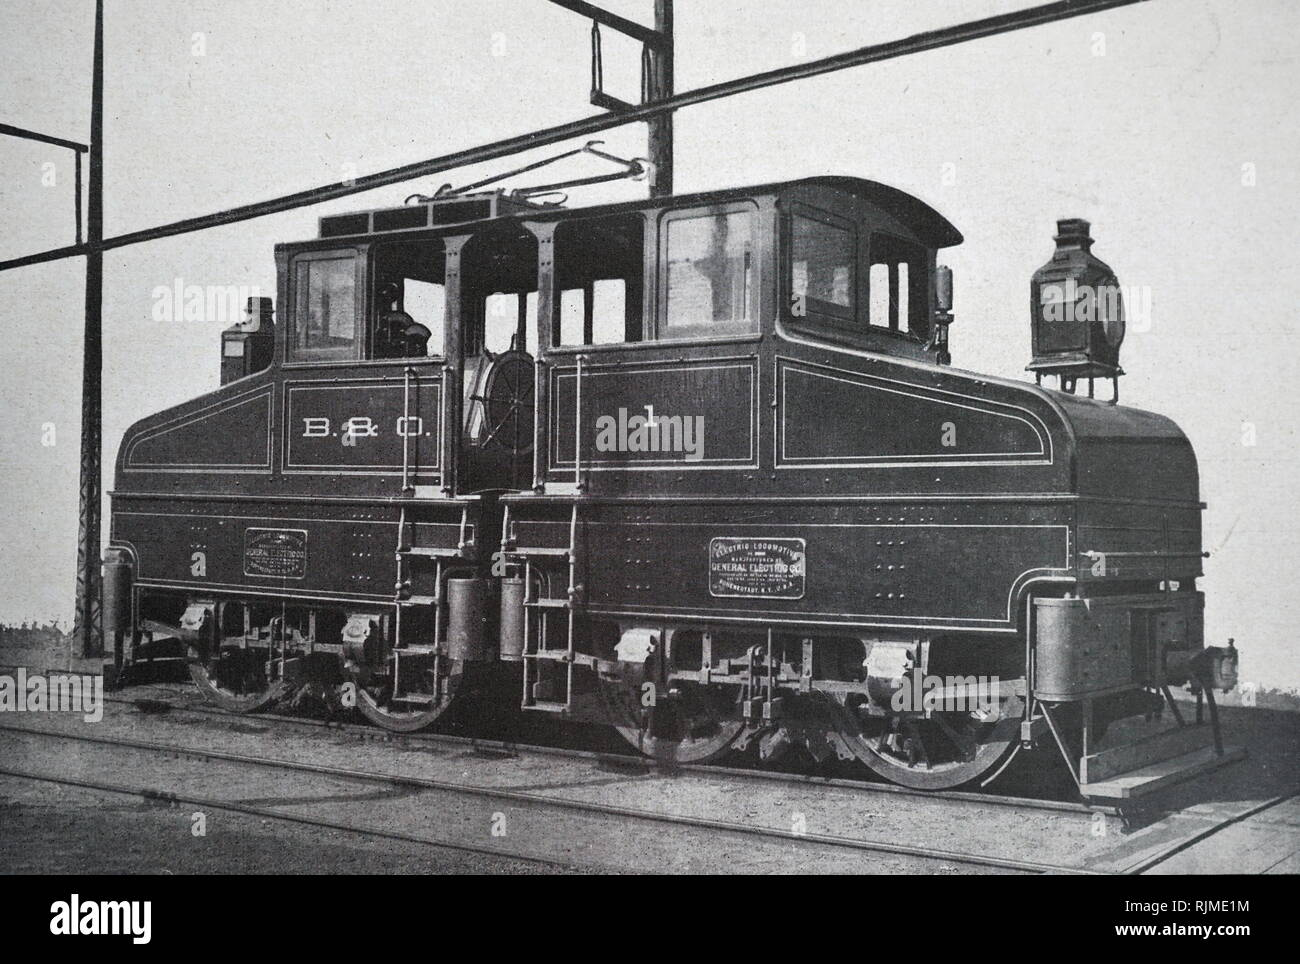 Illustration showing Electric locomotive built at Baltimore by the General Electric Company in 1895, and put into service on the junction line of the Baltimore and Ohio Railroad - Stock Image